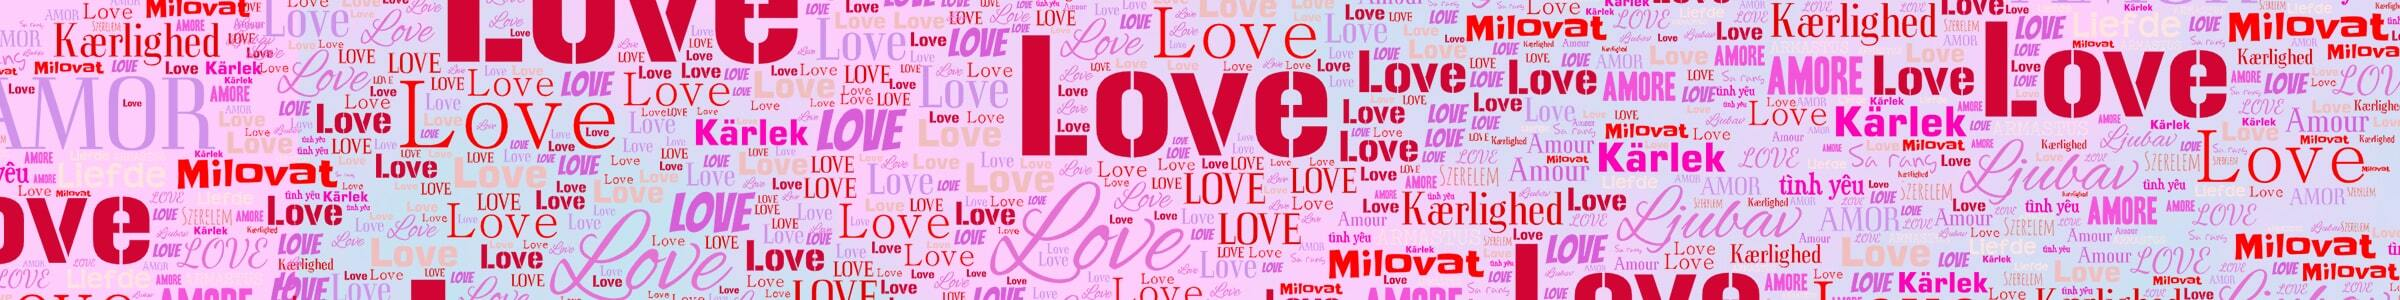 Category_Teaser_Headerr_Love_Word_Cloud_2400x300